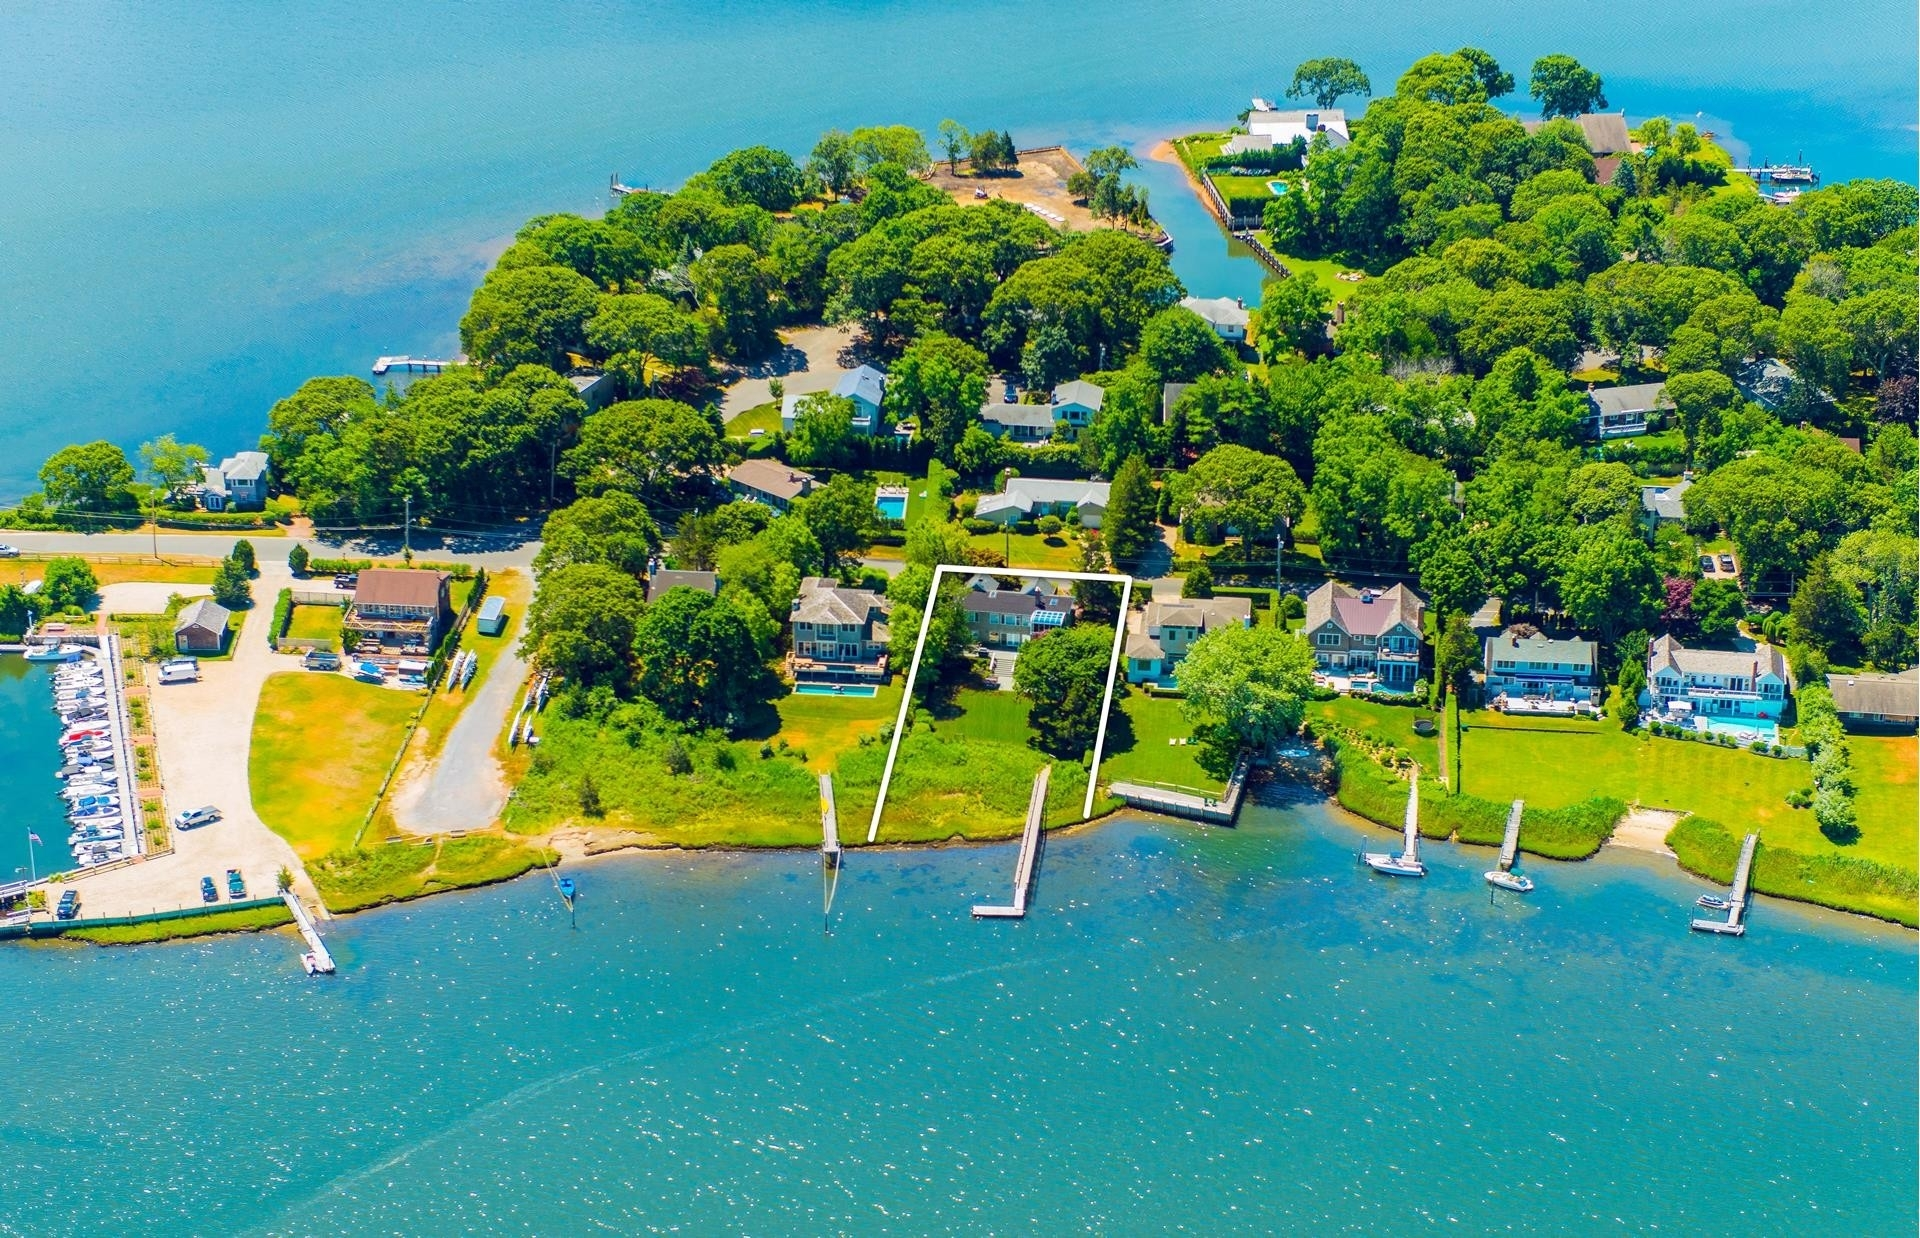 Single Family Home for Sale at Sag Harbor Village, Sag Harbor, NY 11963